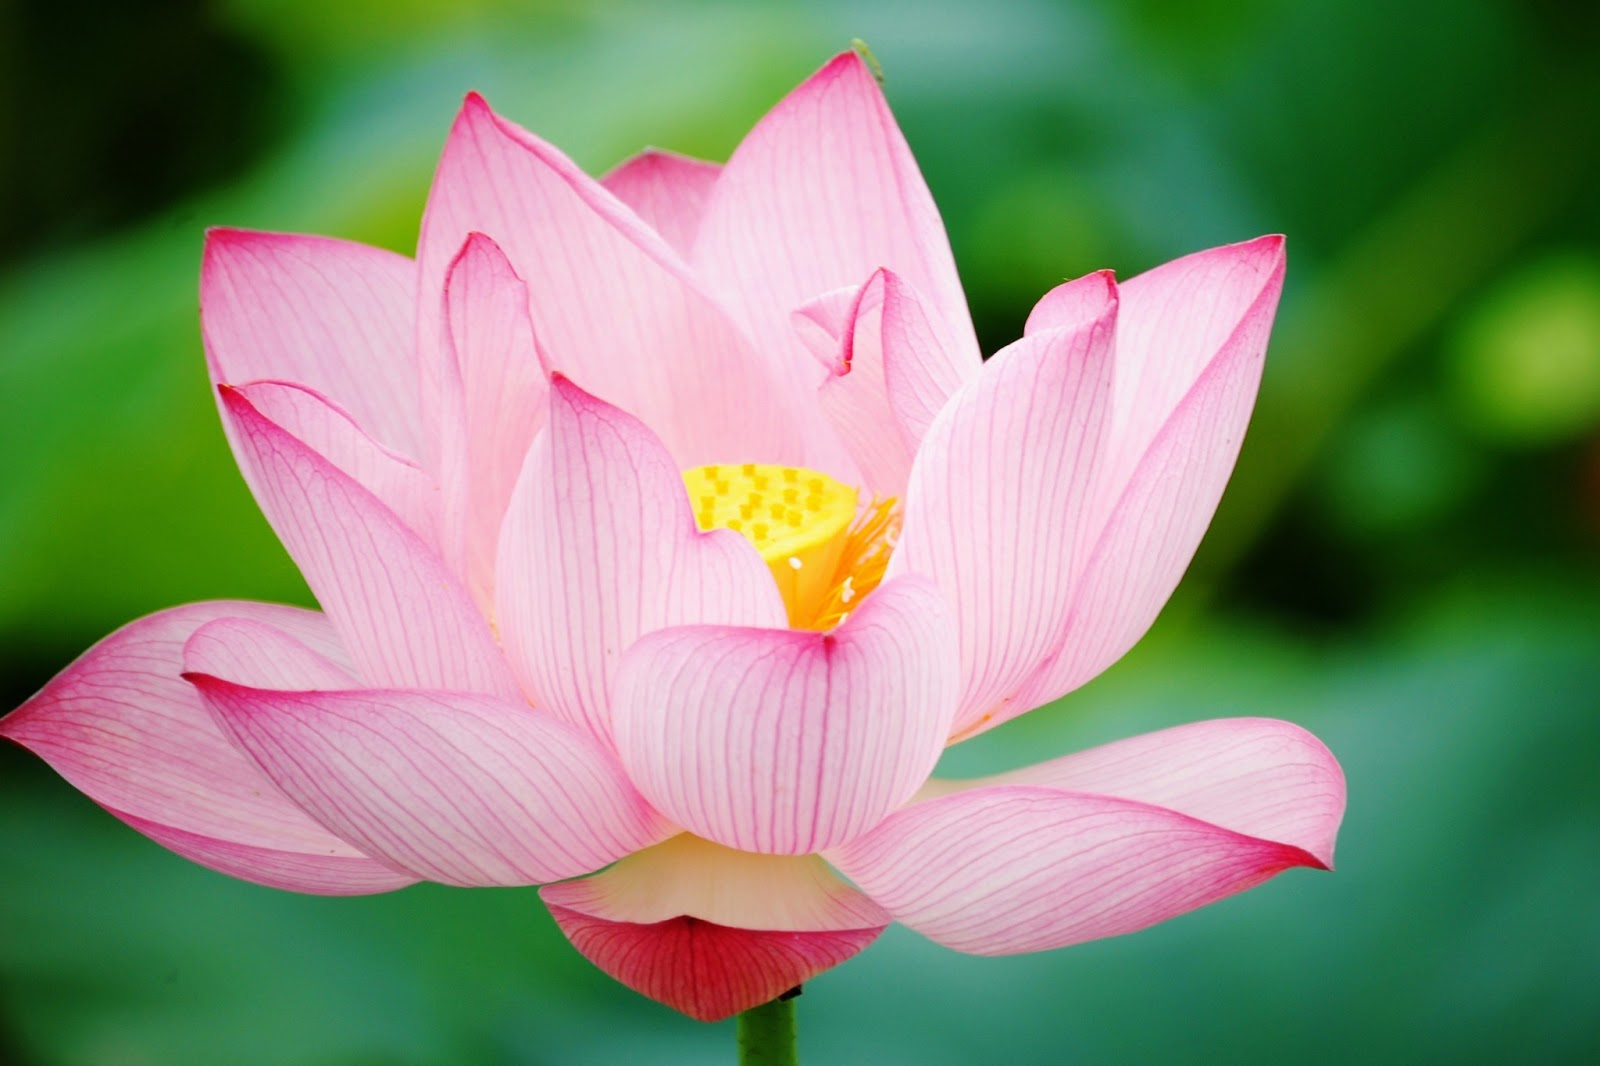 Lotus Flower HD wallpapers | HD Wallpapers (High ...